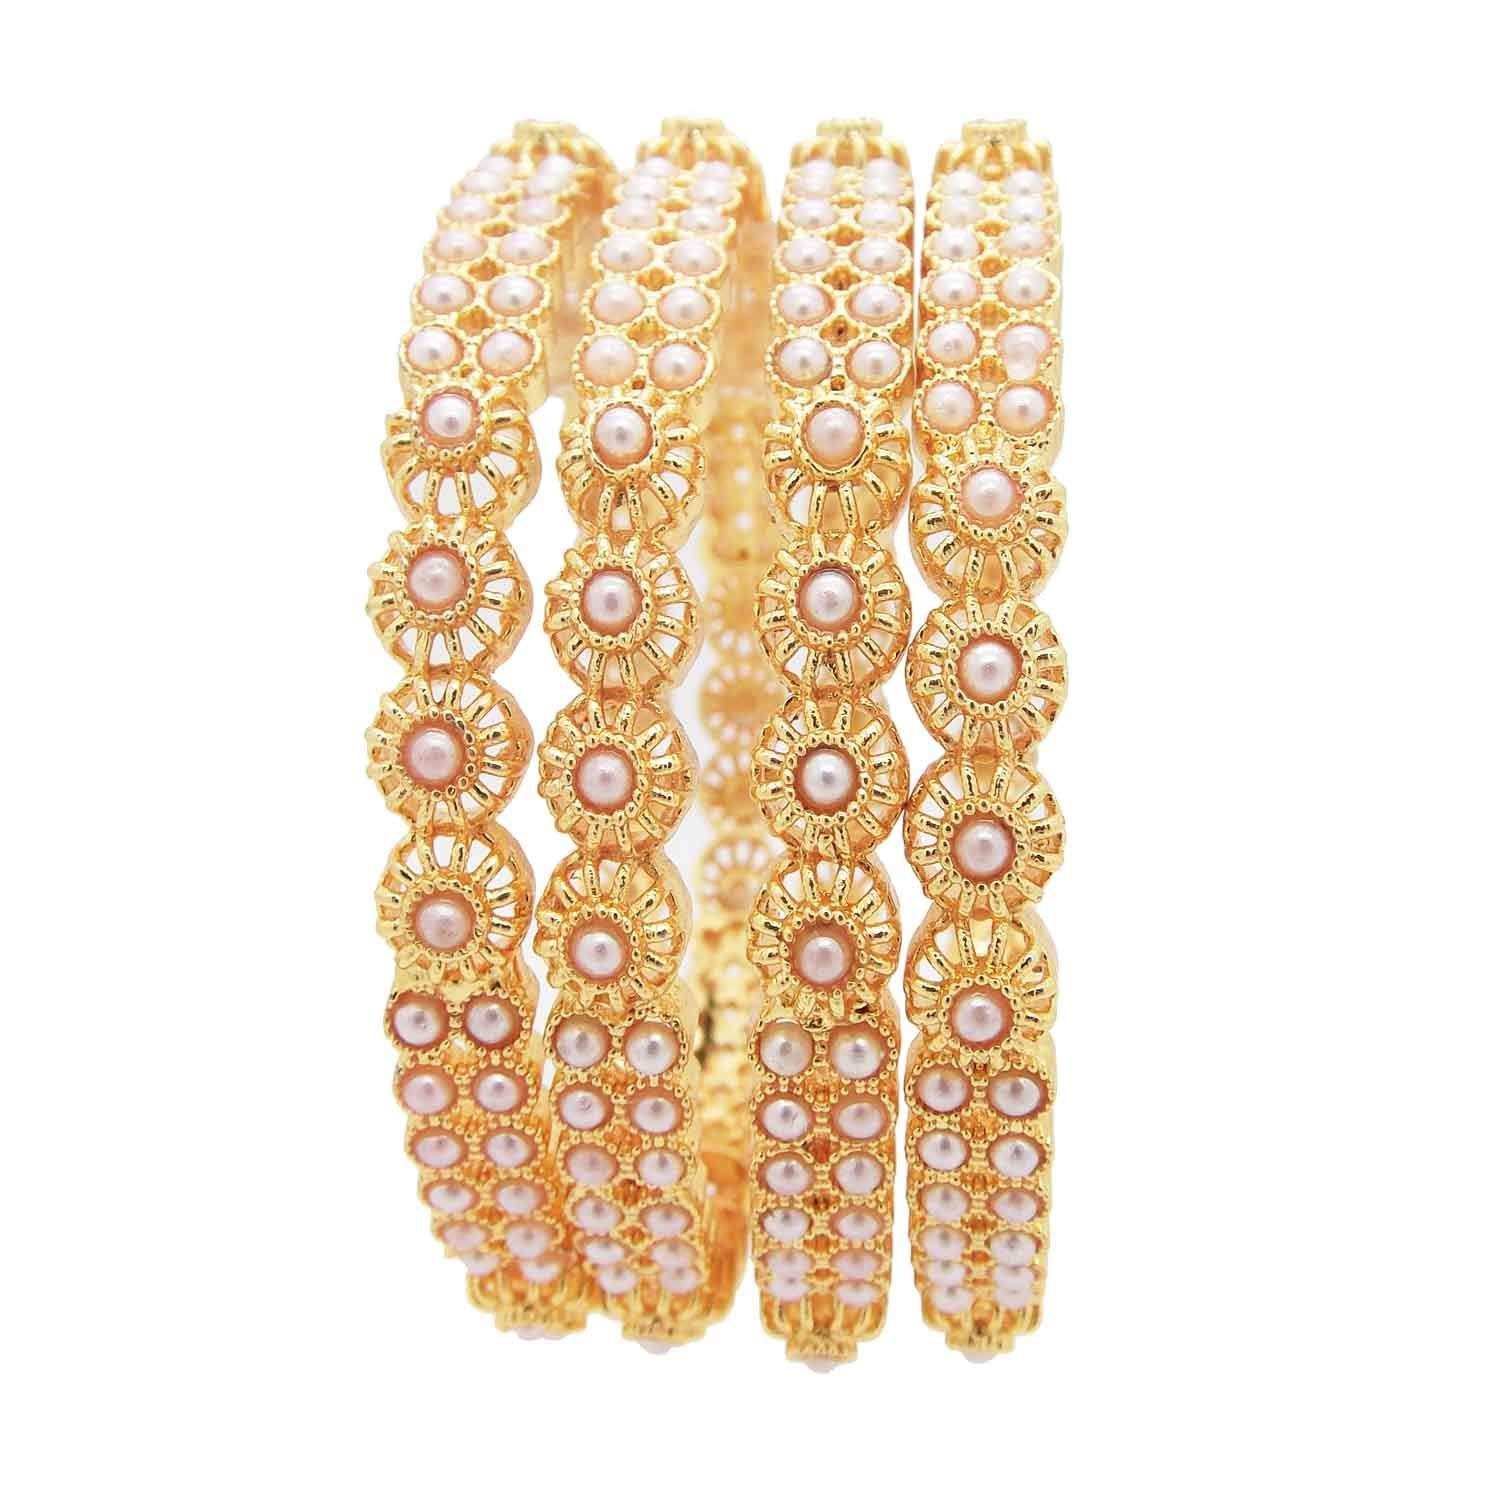 Amazon price history for 9blings Bridal Collection White Pearl Gumbaj Gold Plated 4pc Bangle Womens Girls